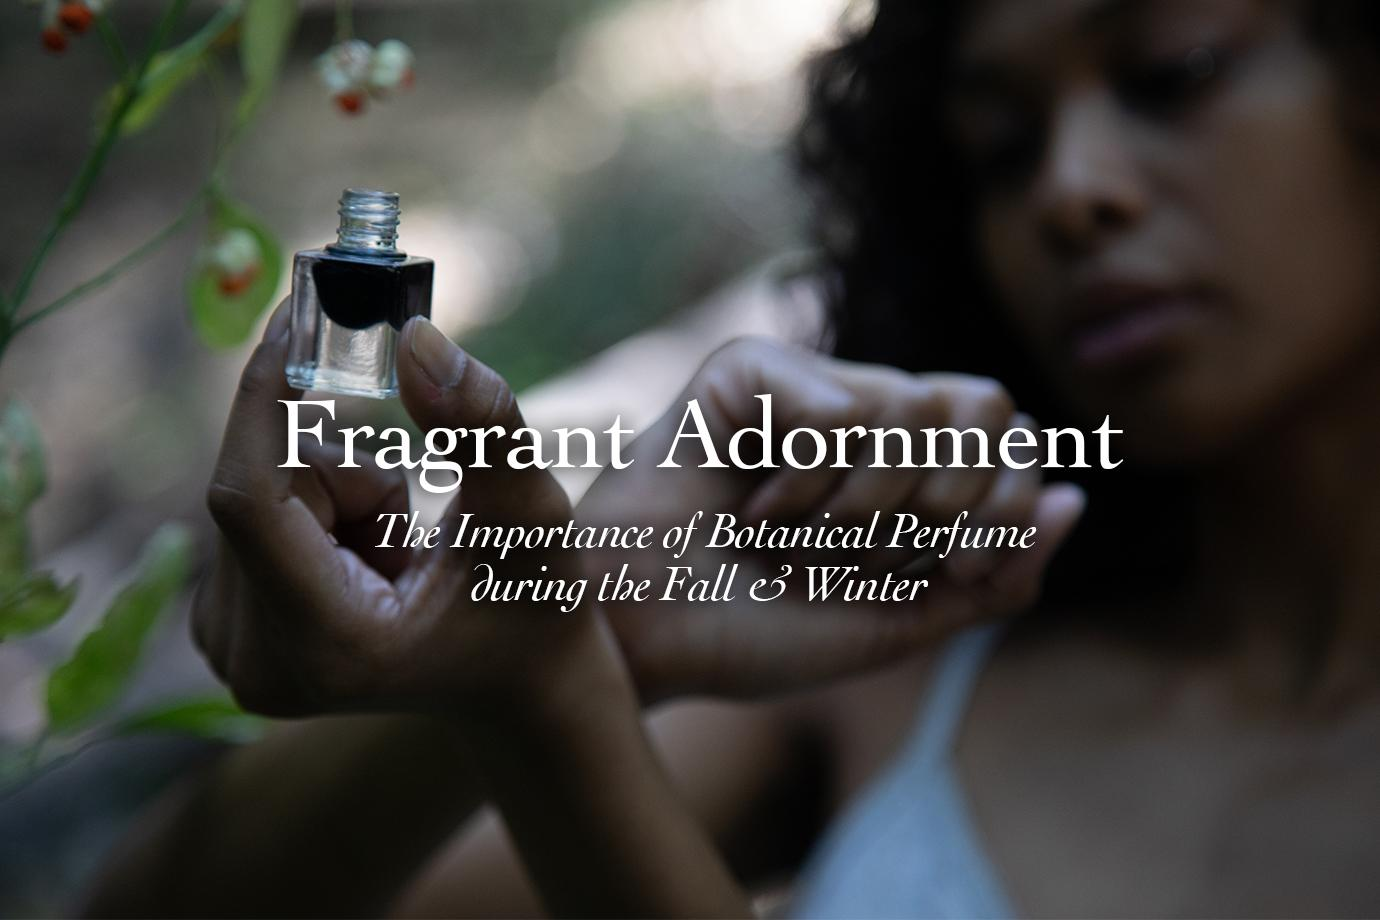 Fragrant Adornment